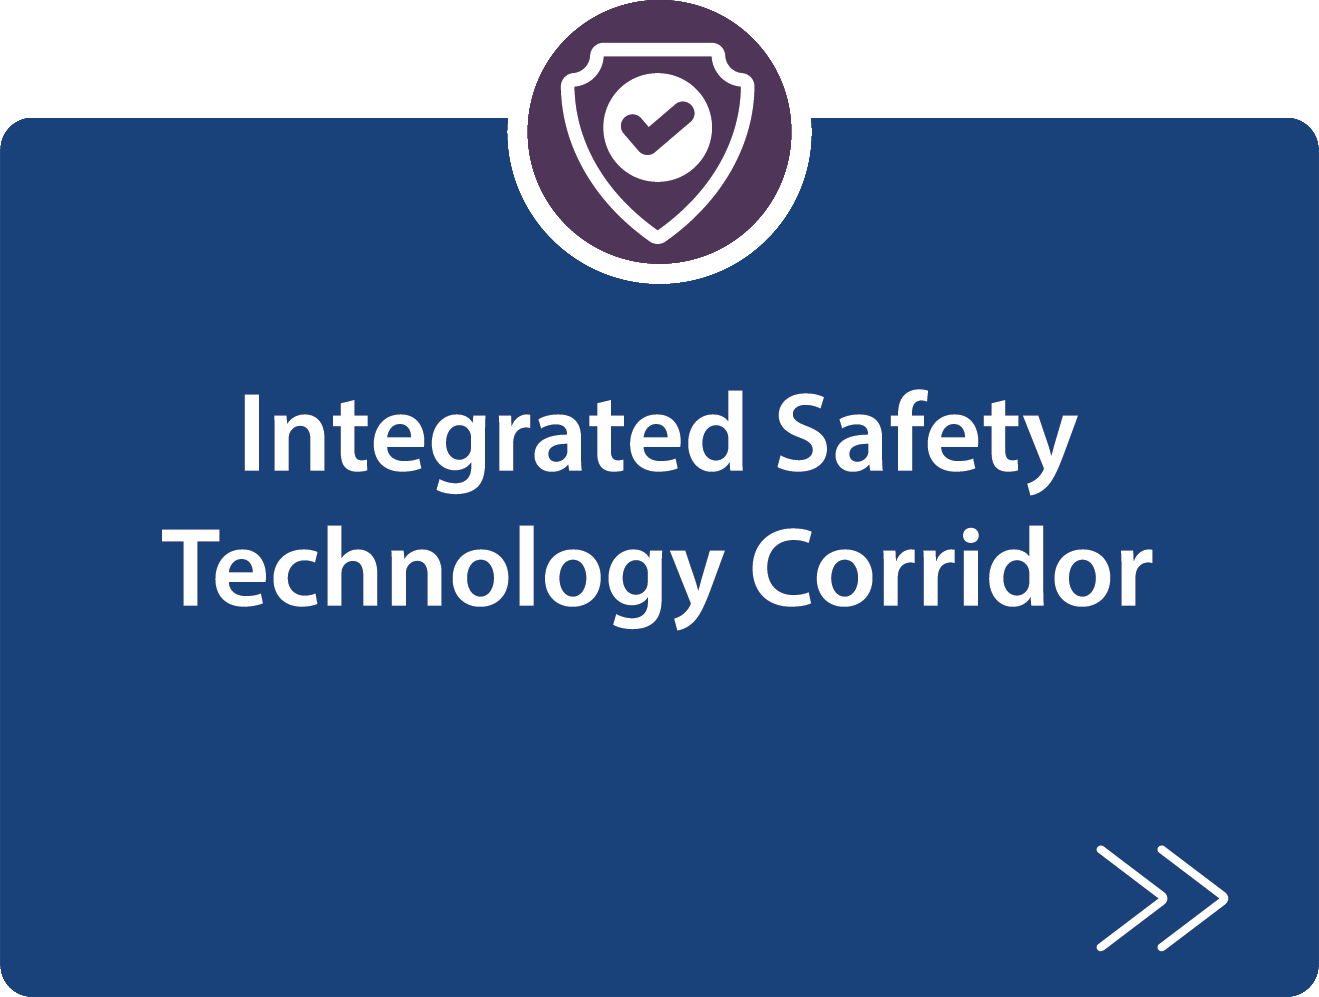 integrated Safety Technology Corridor project description